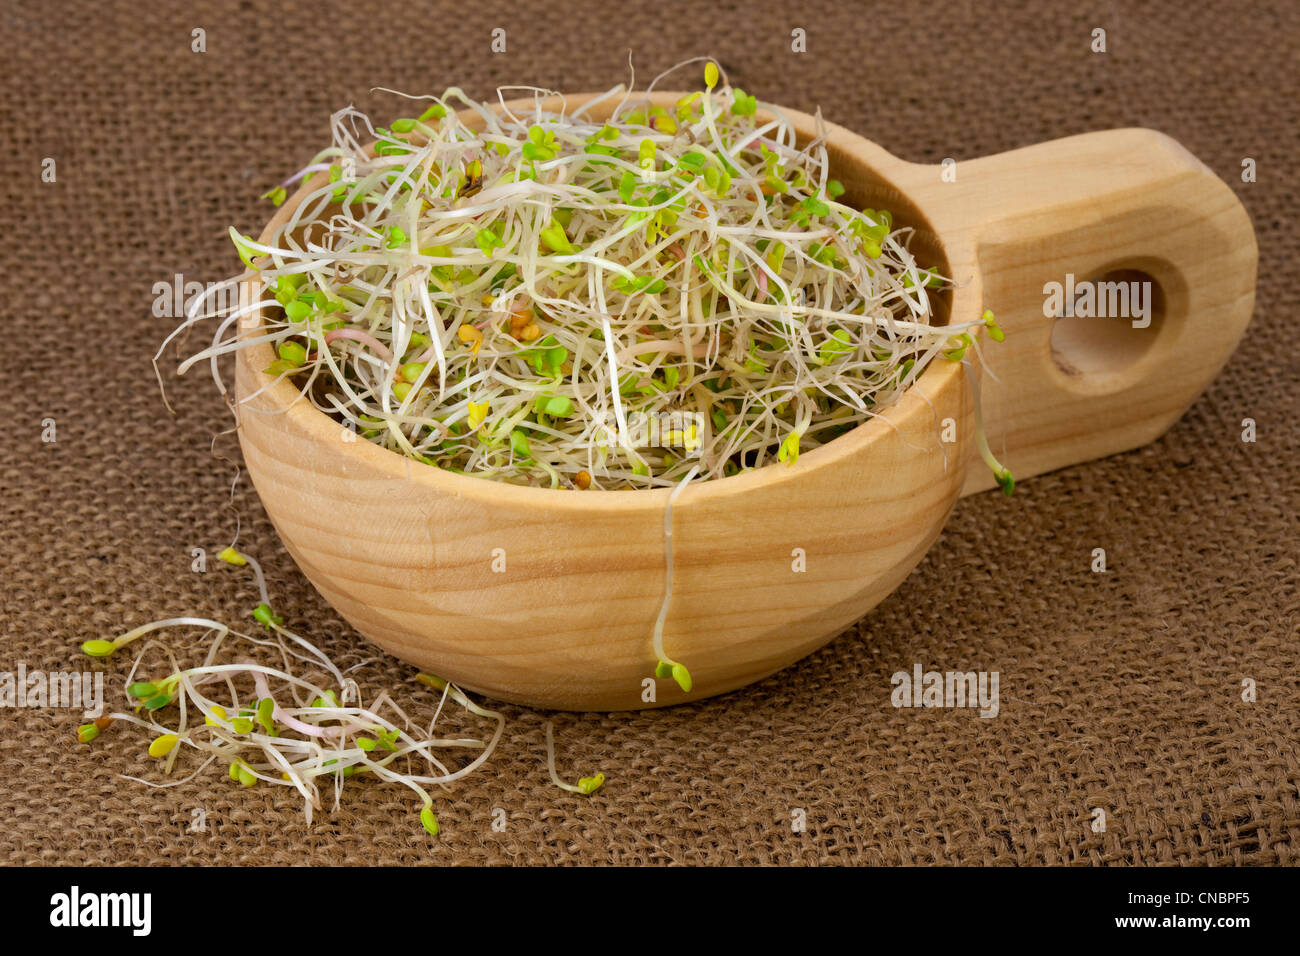 broccoli, radish and clover sprouts in a wooden rustic bowl, burlap background Stock Photo